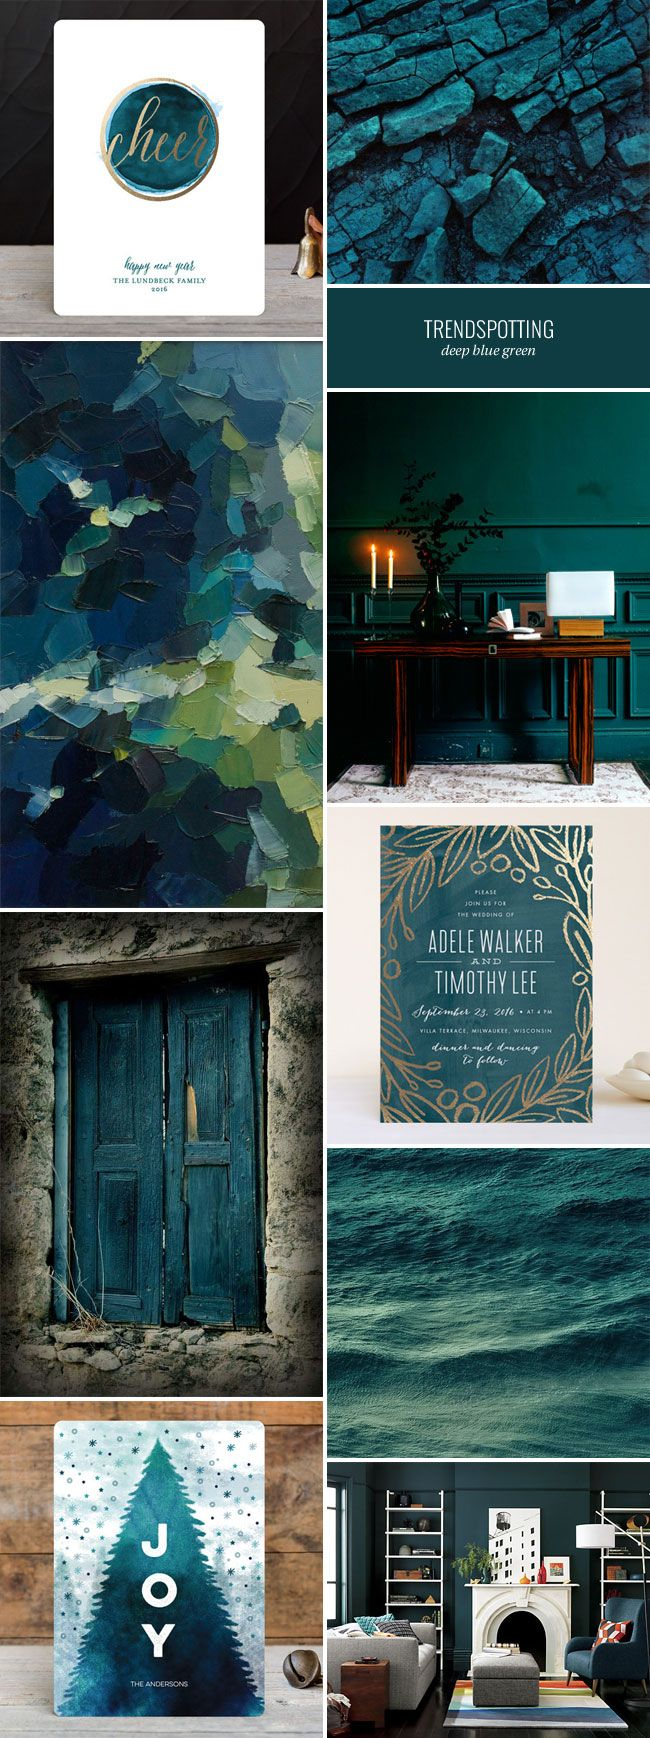 The deep blue green 2016 stationery color trend, featuring inspiration and paper goods in this dramatic, luxurious hue.